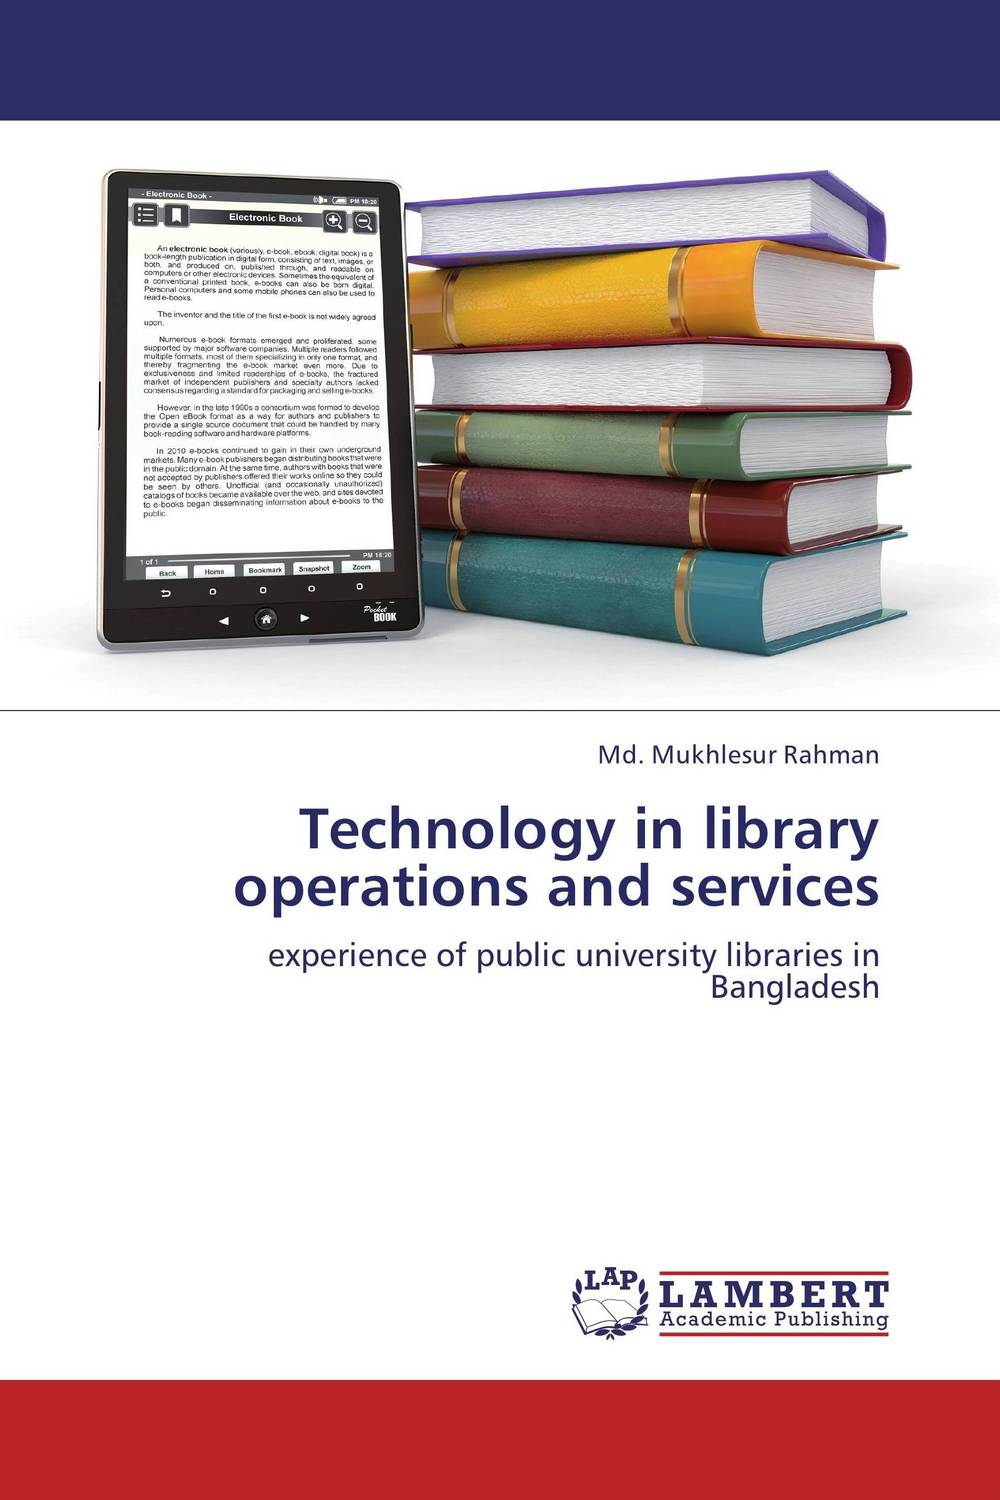 Technology in library operations and services library software migration and its effectiveness in selected libraries